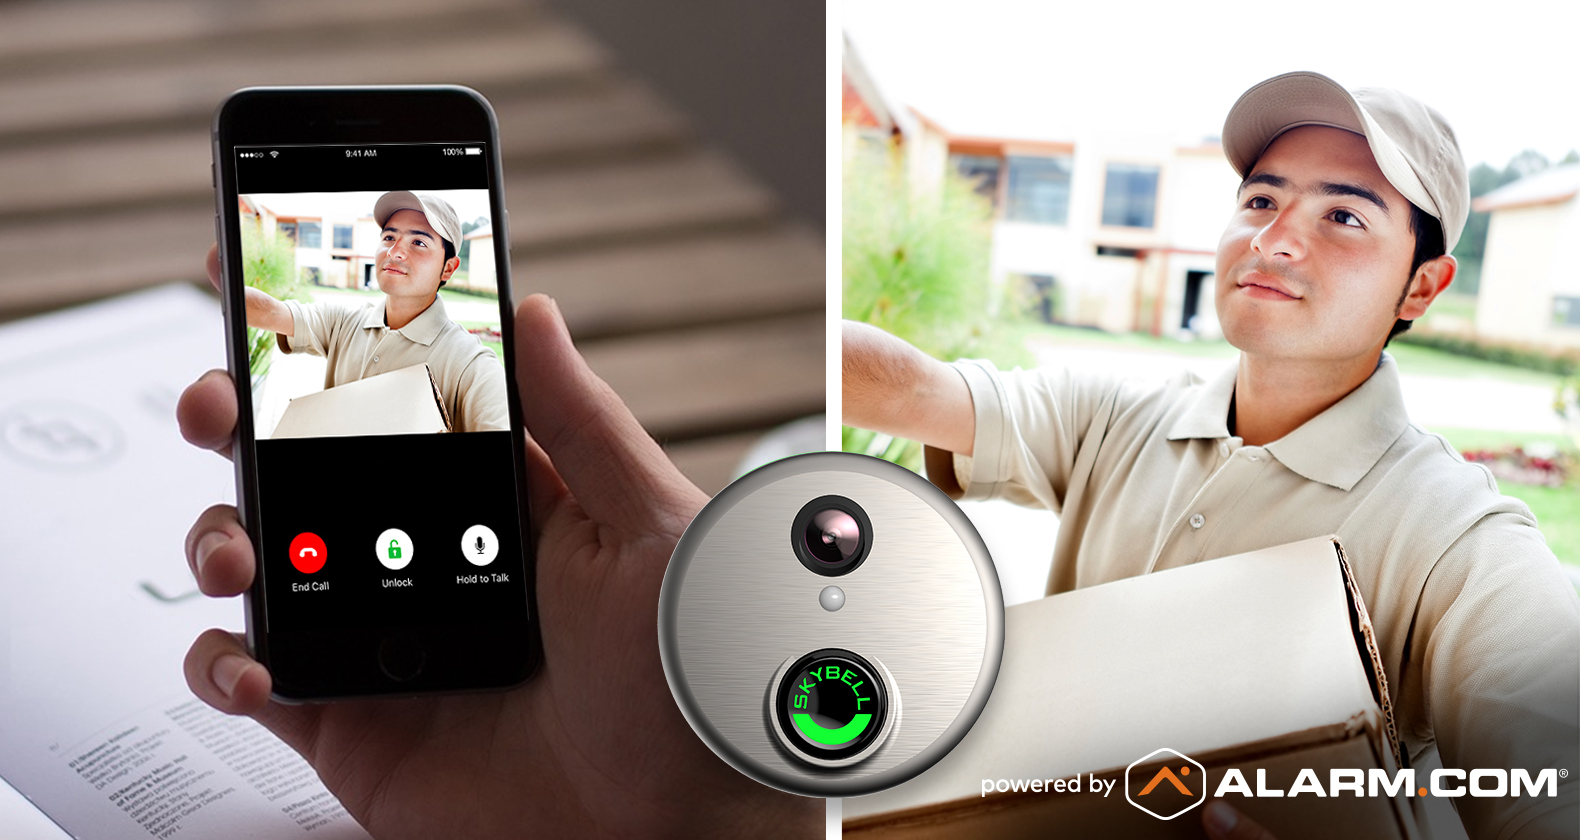 25% off Smart Home Doorbell Camera!      Stay Vigilant - Stay Smart!